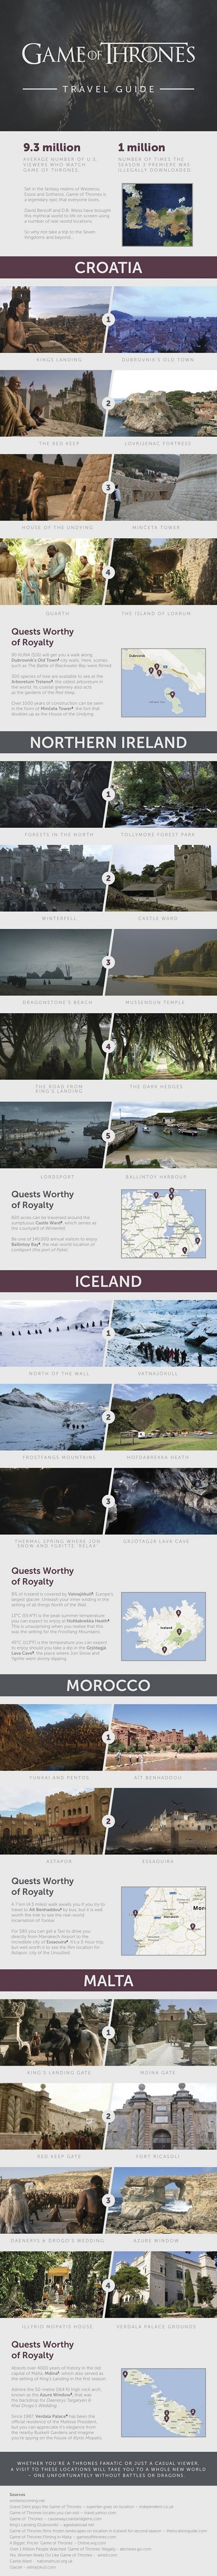 Iceland Croatia guide Malta morocco Game of Thrones Travel northern ireland - 7855889408